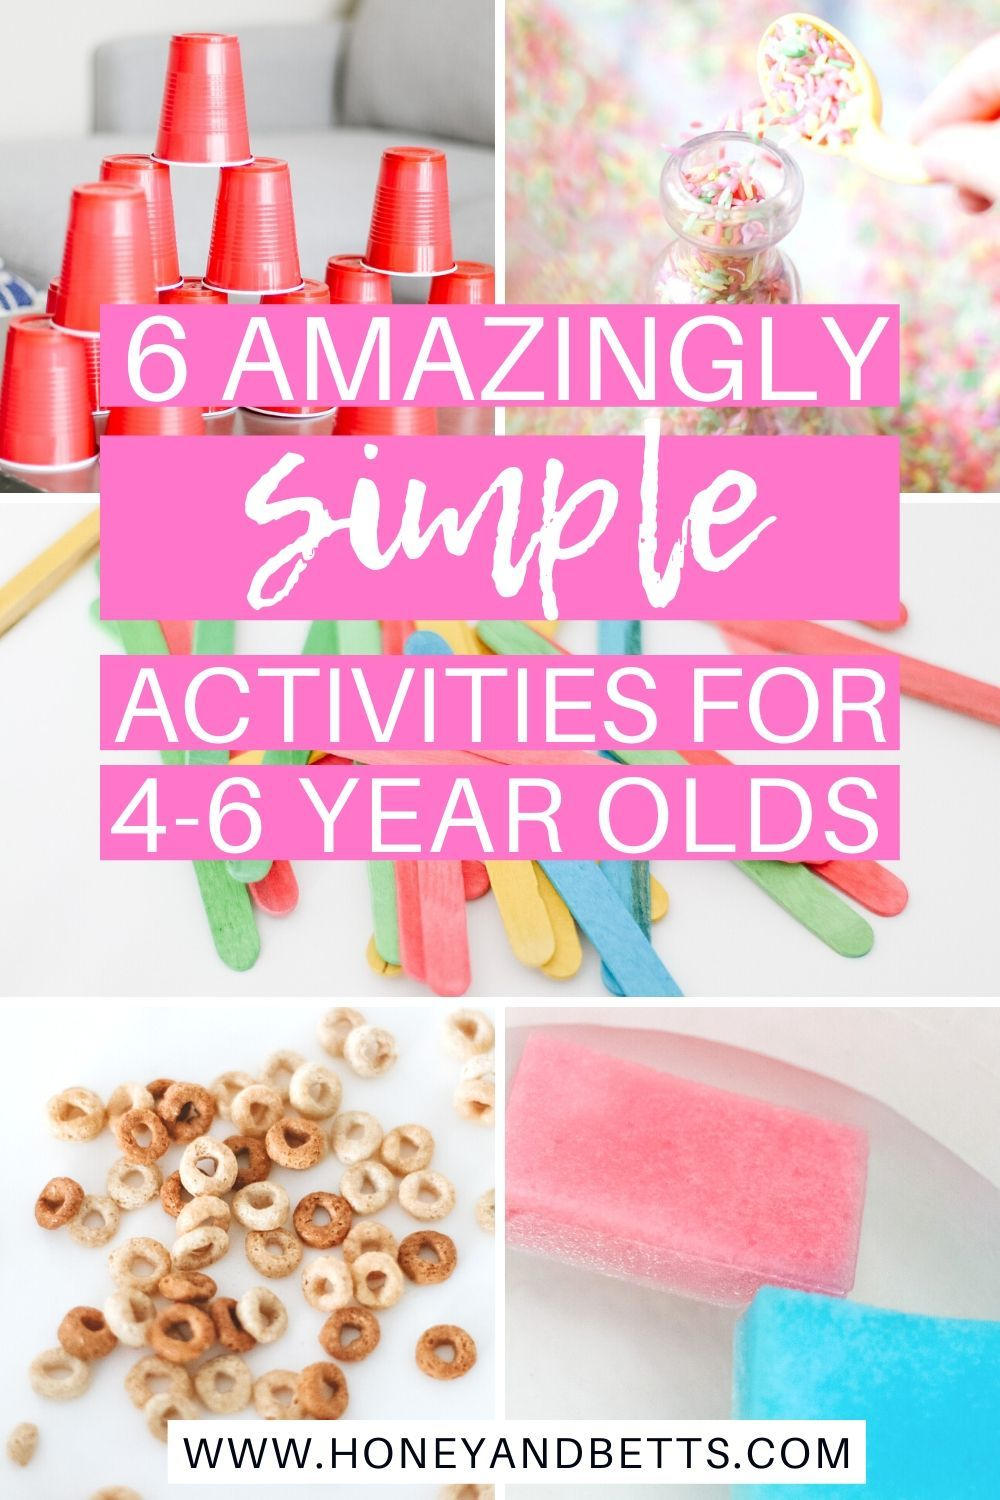 Fun Activities For 4-6 Year Olds At